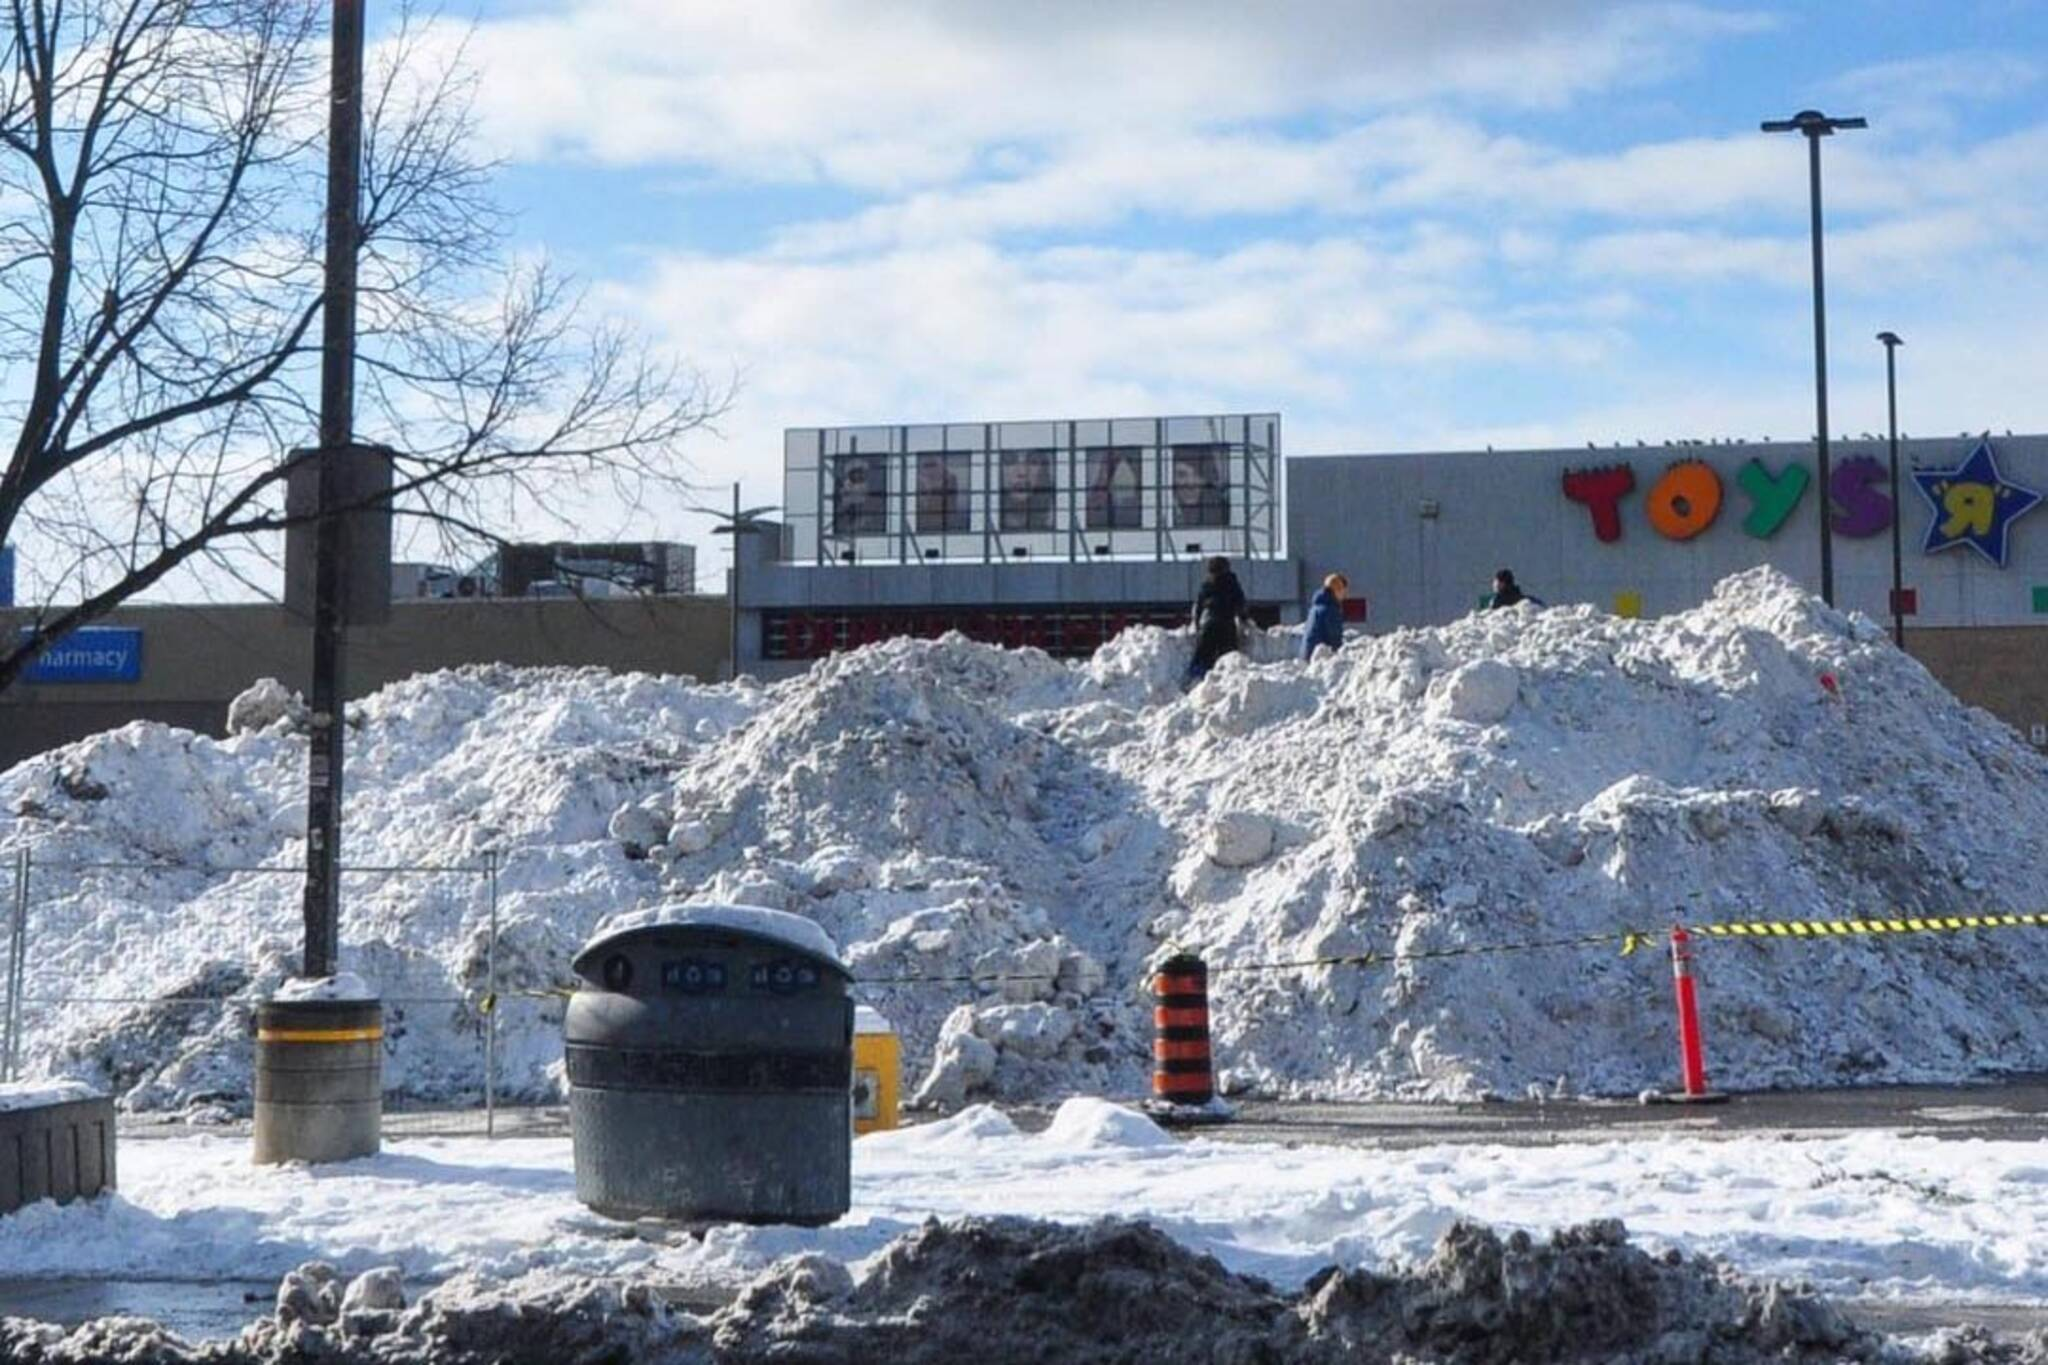 dufferin mall snow